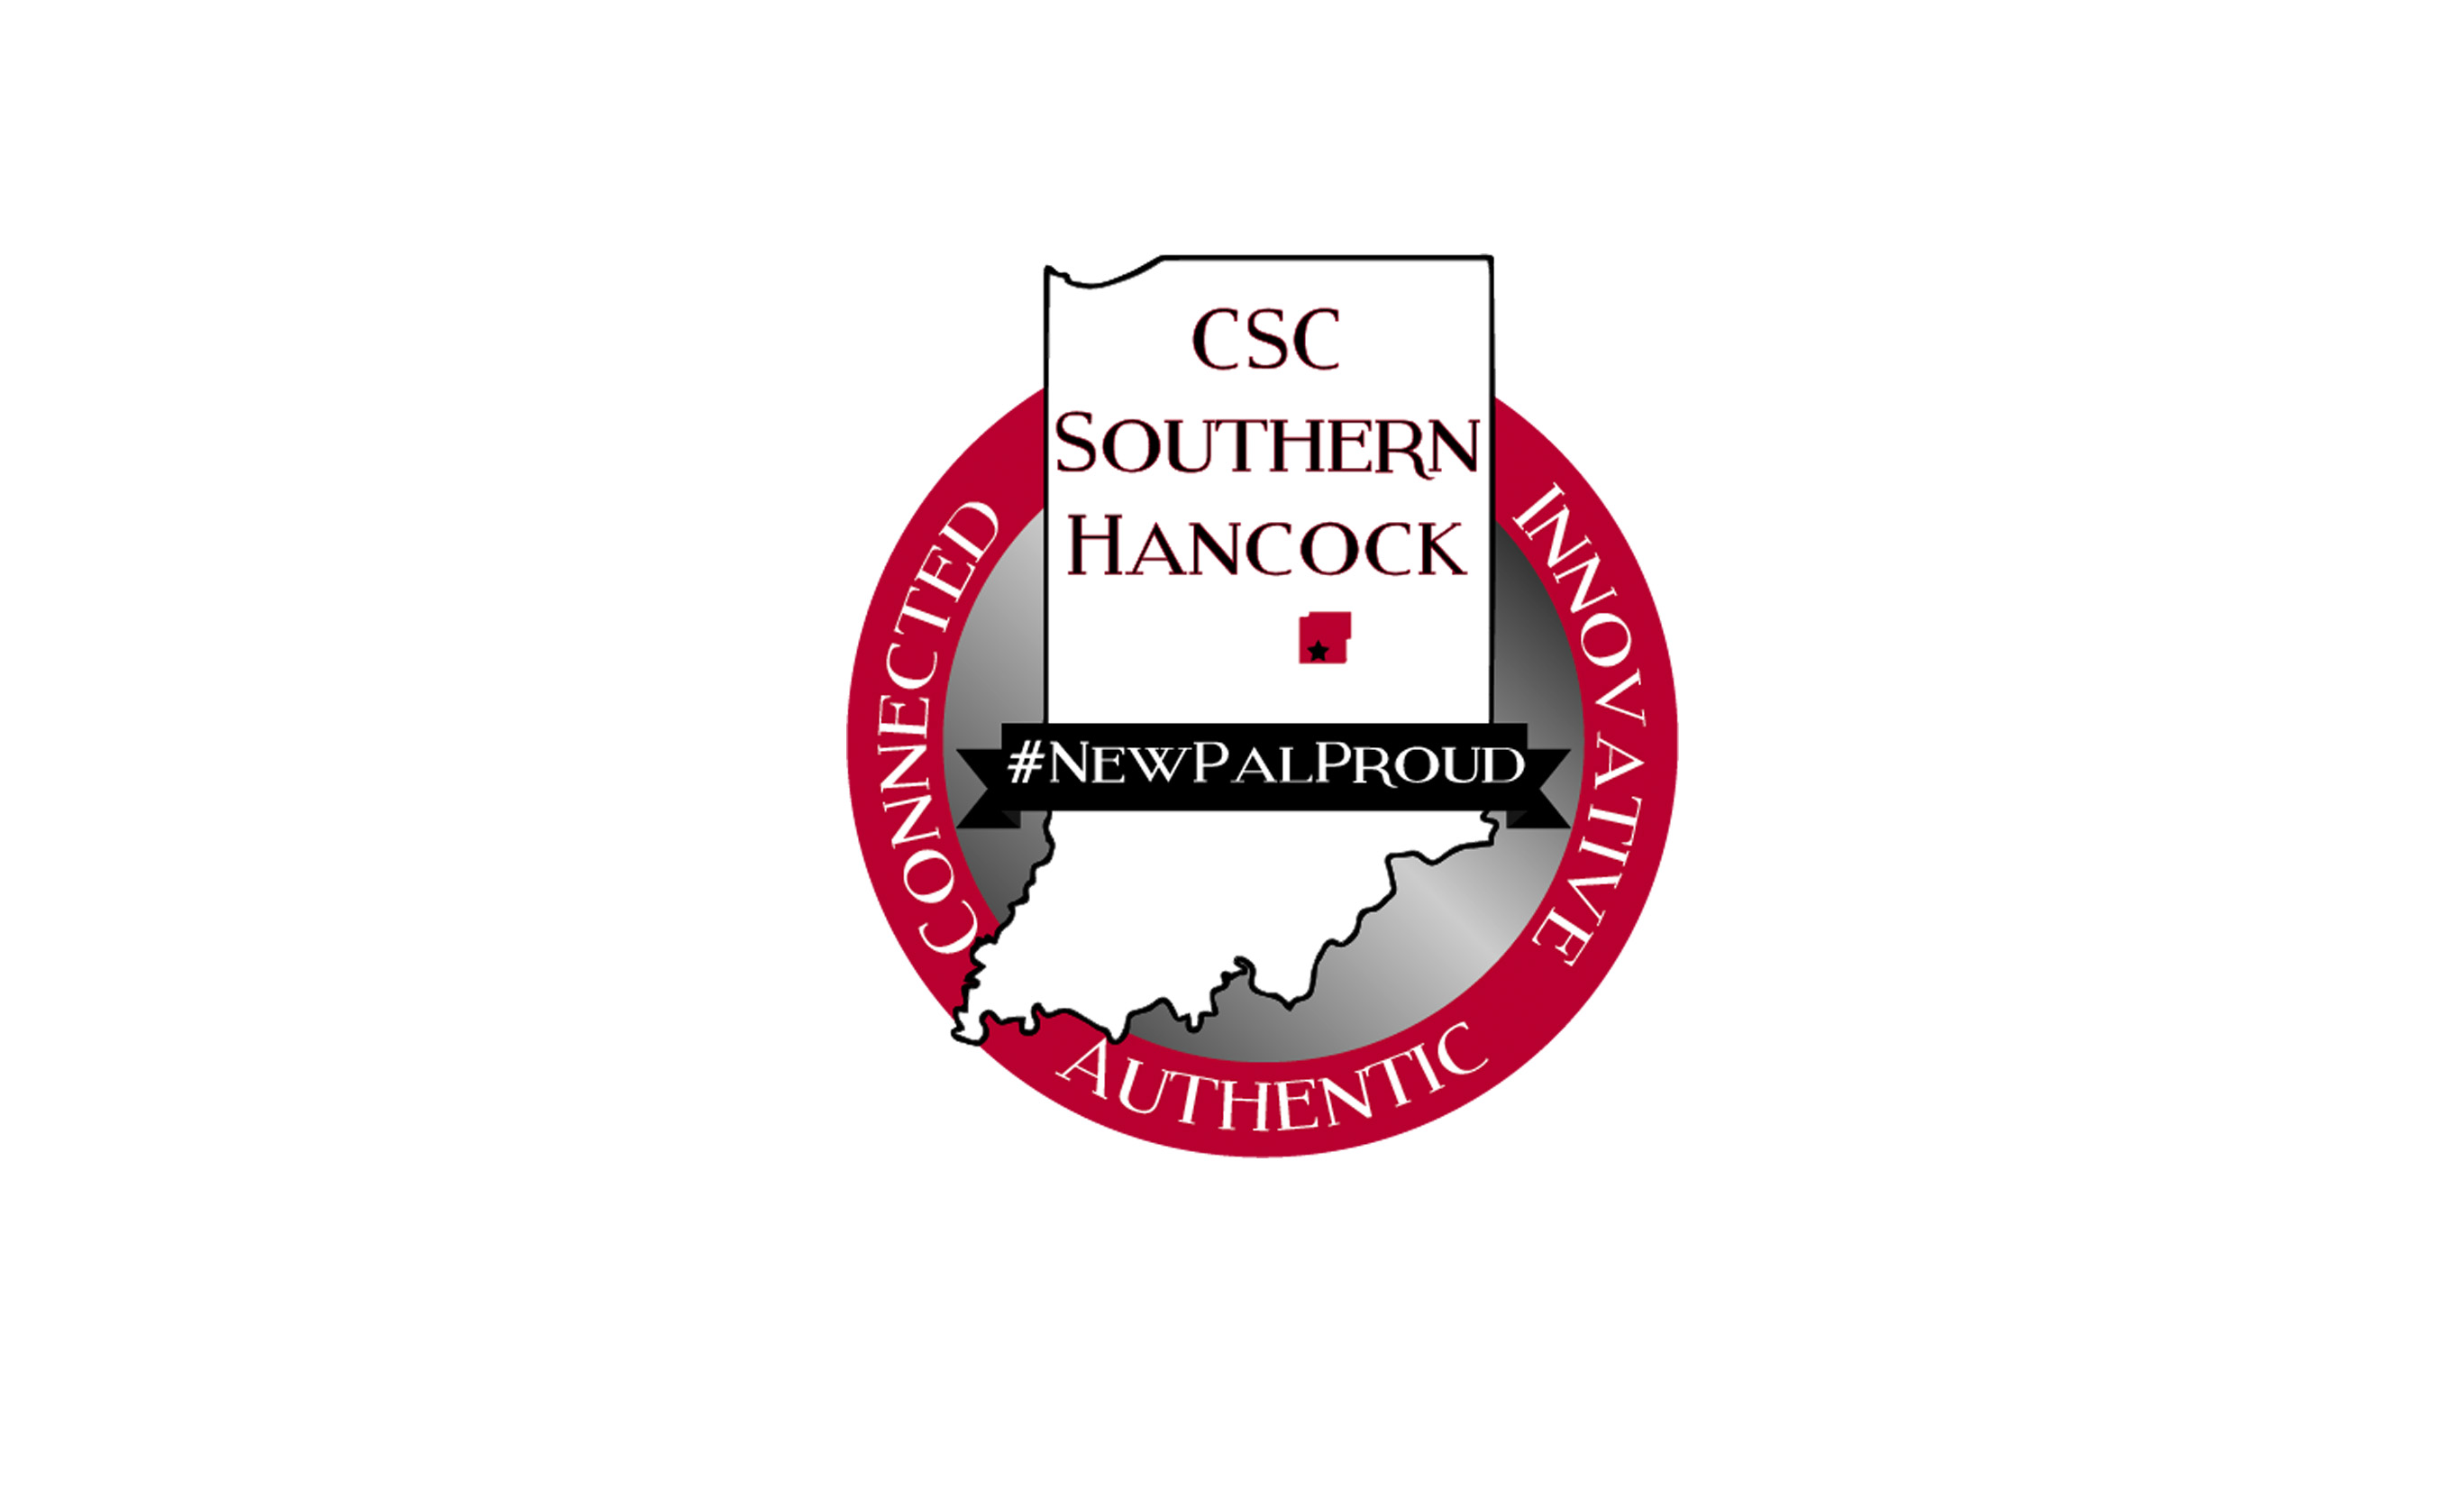 CSCSHC District logo